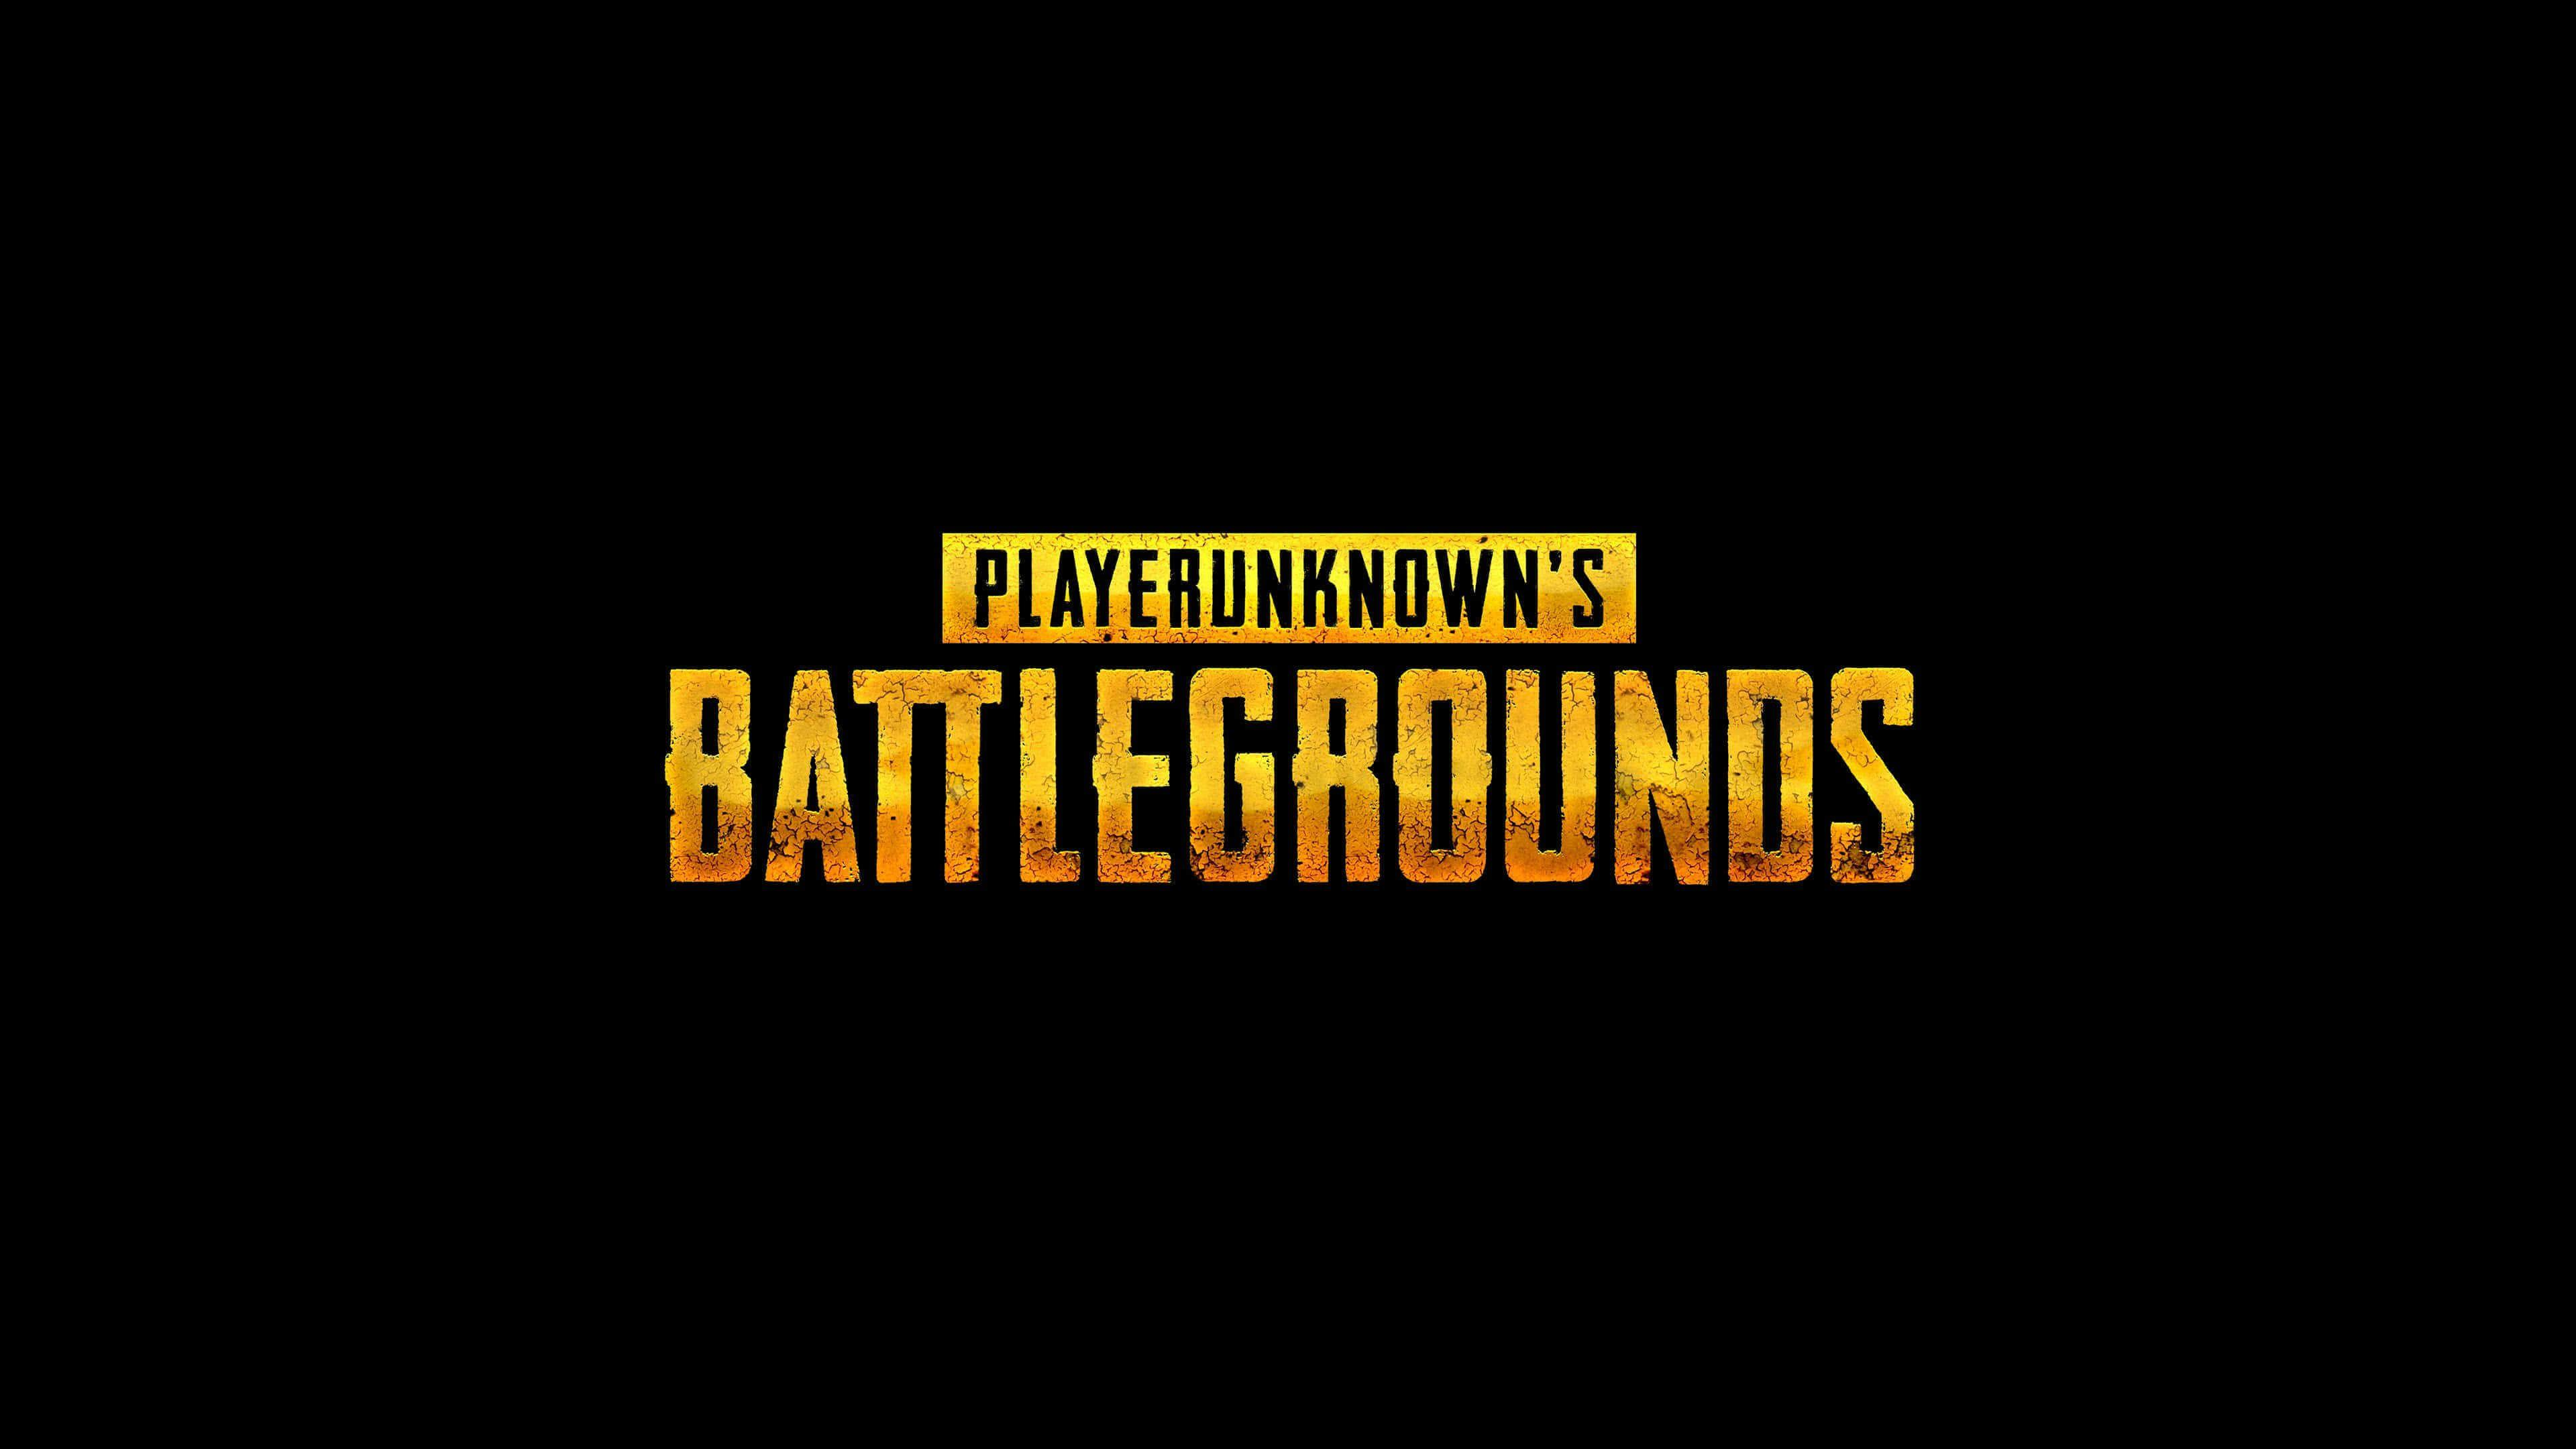 Pubg Wallpaper 4k Black And White: PUBG Black Wallpapers